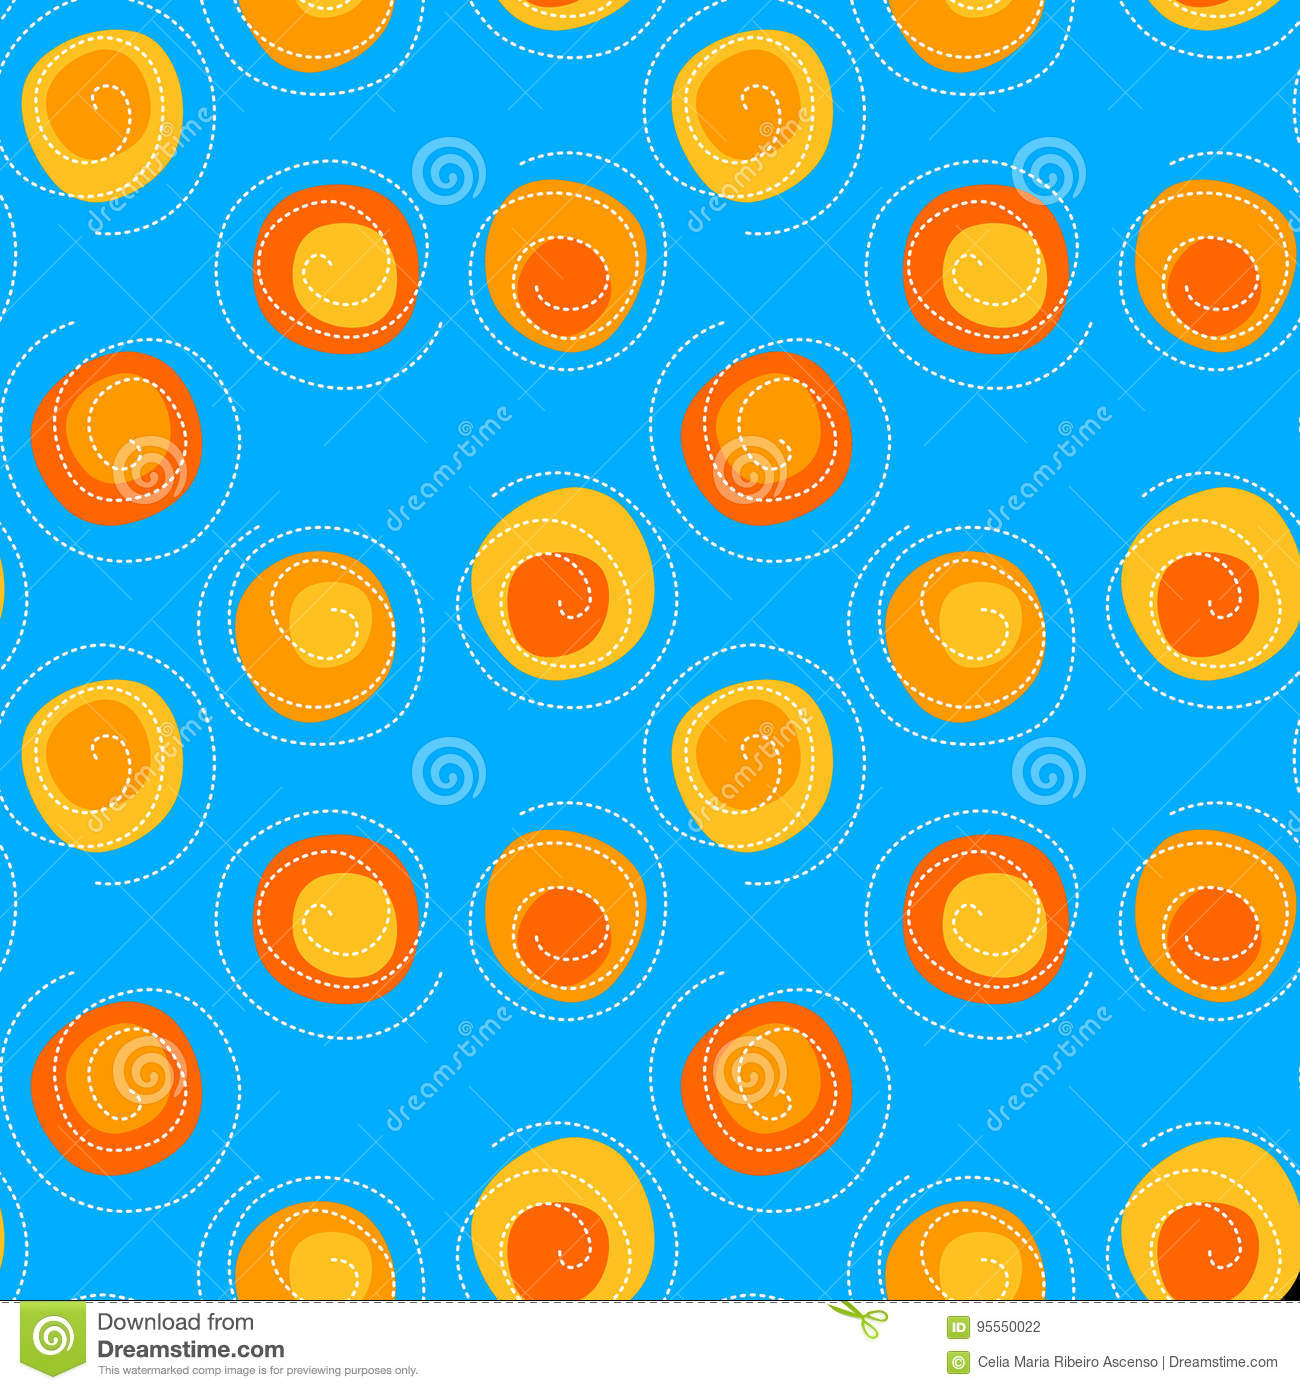 Spirals and Suns seamless pattern background